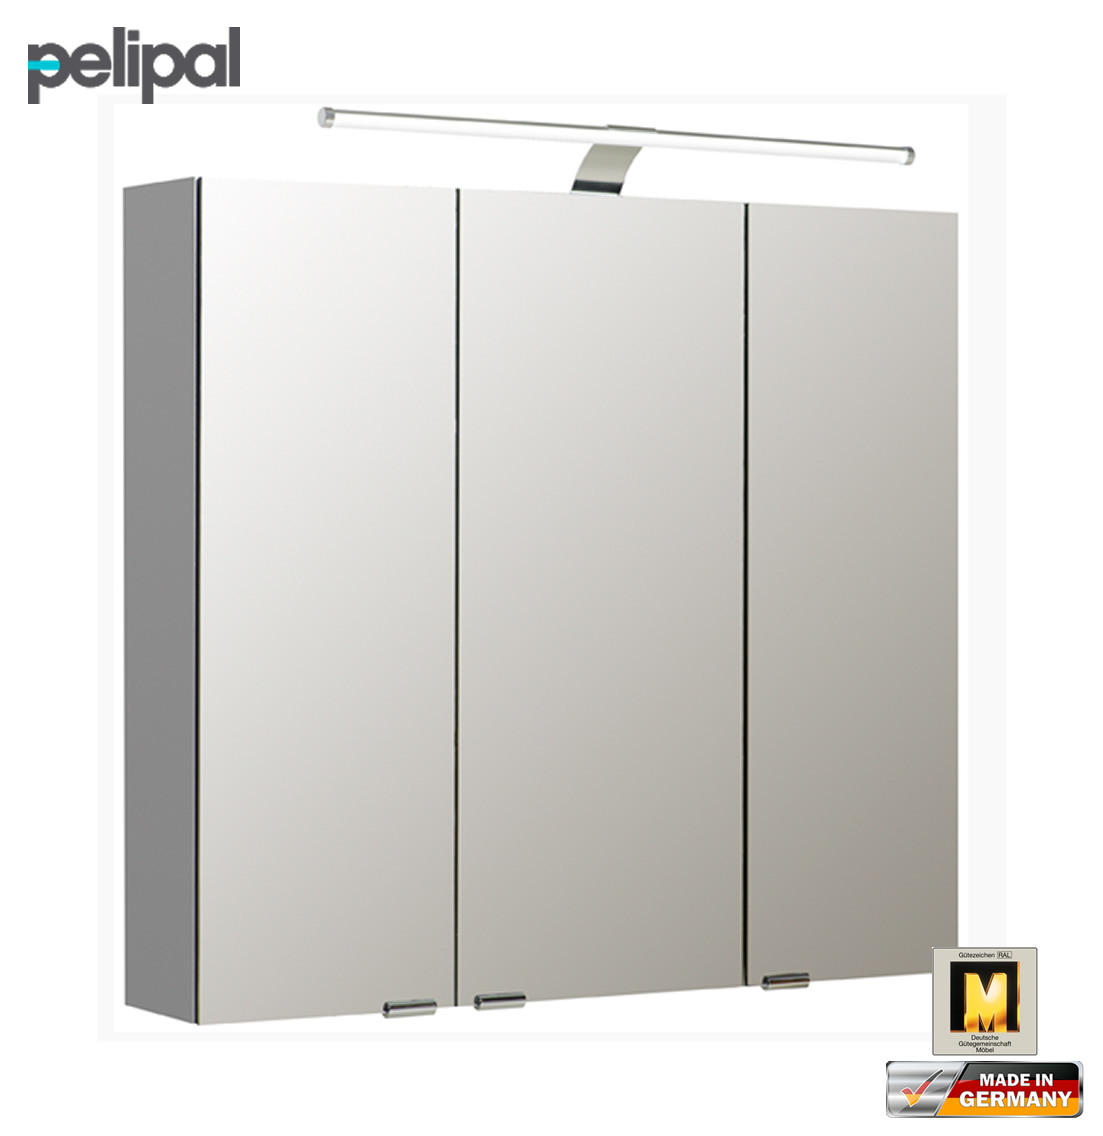 pelipal neutraler spiegelschrank 80 cm mit led aufsatzleuchte s5 spsd 11 impuls home. Black Bedroom Furniture Sets. Home Design Ideas